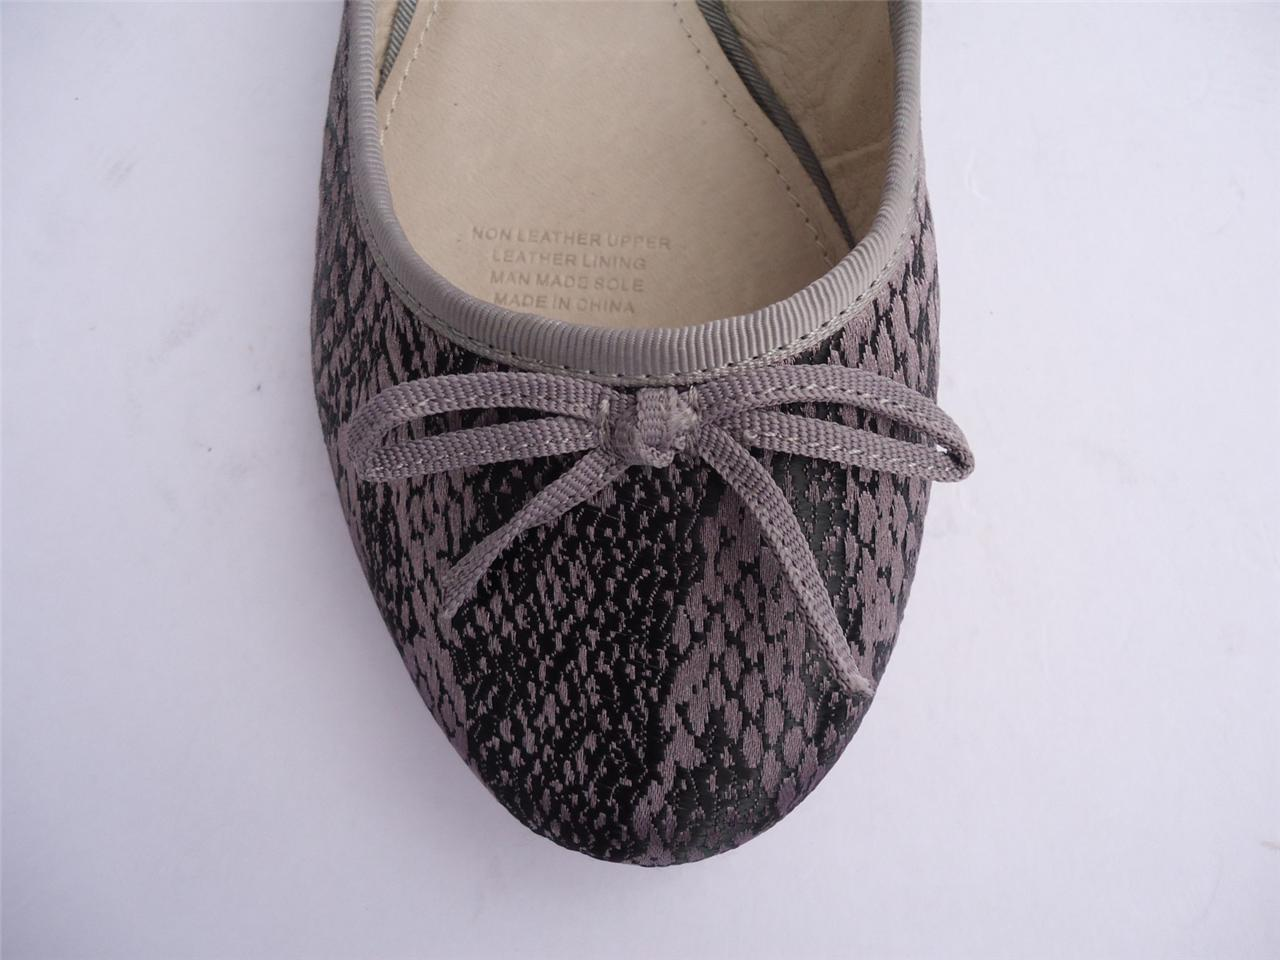 New-Ladies-Women-Diana-Ferrari-Shoe-Ballet-Flat-Grey-Black-Sz-5-6-7-8-9-10-11